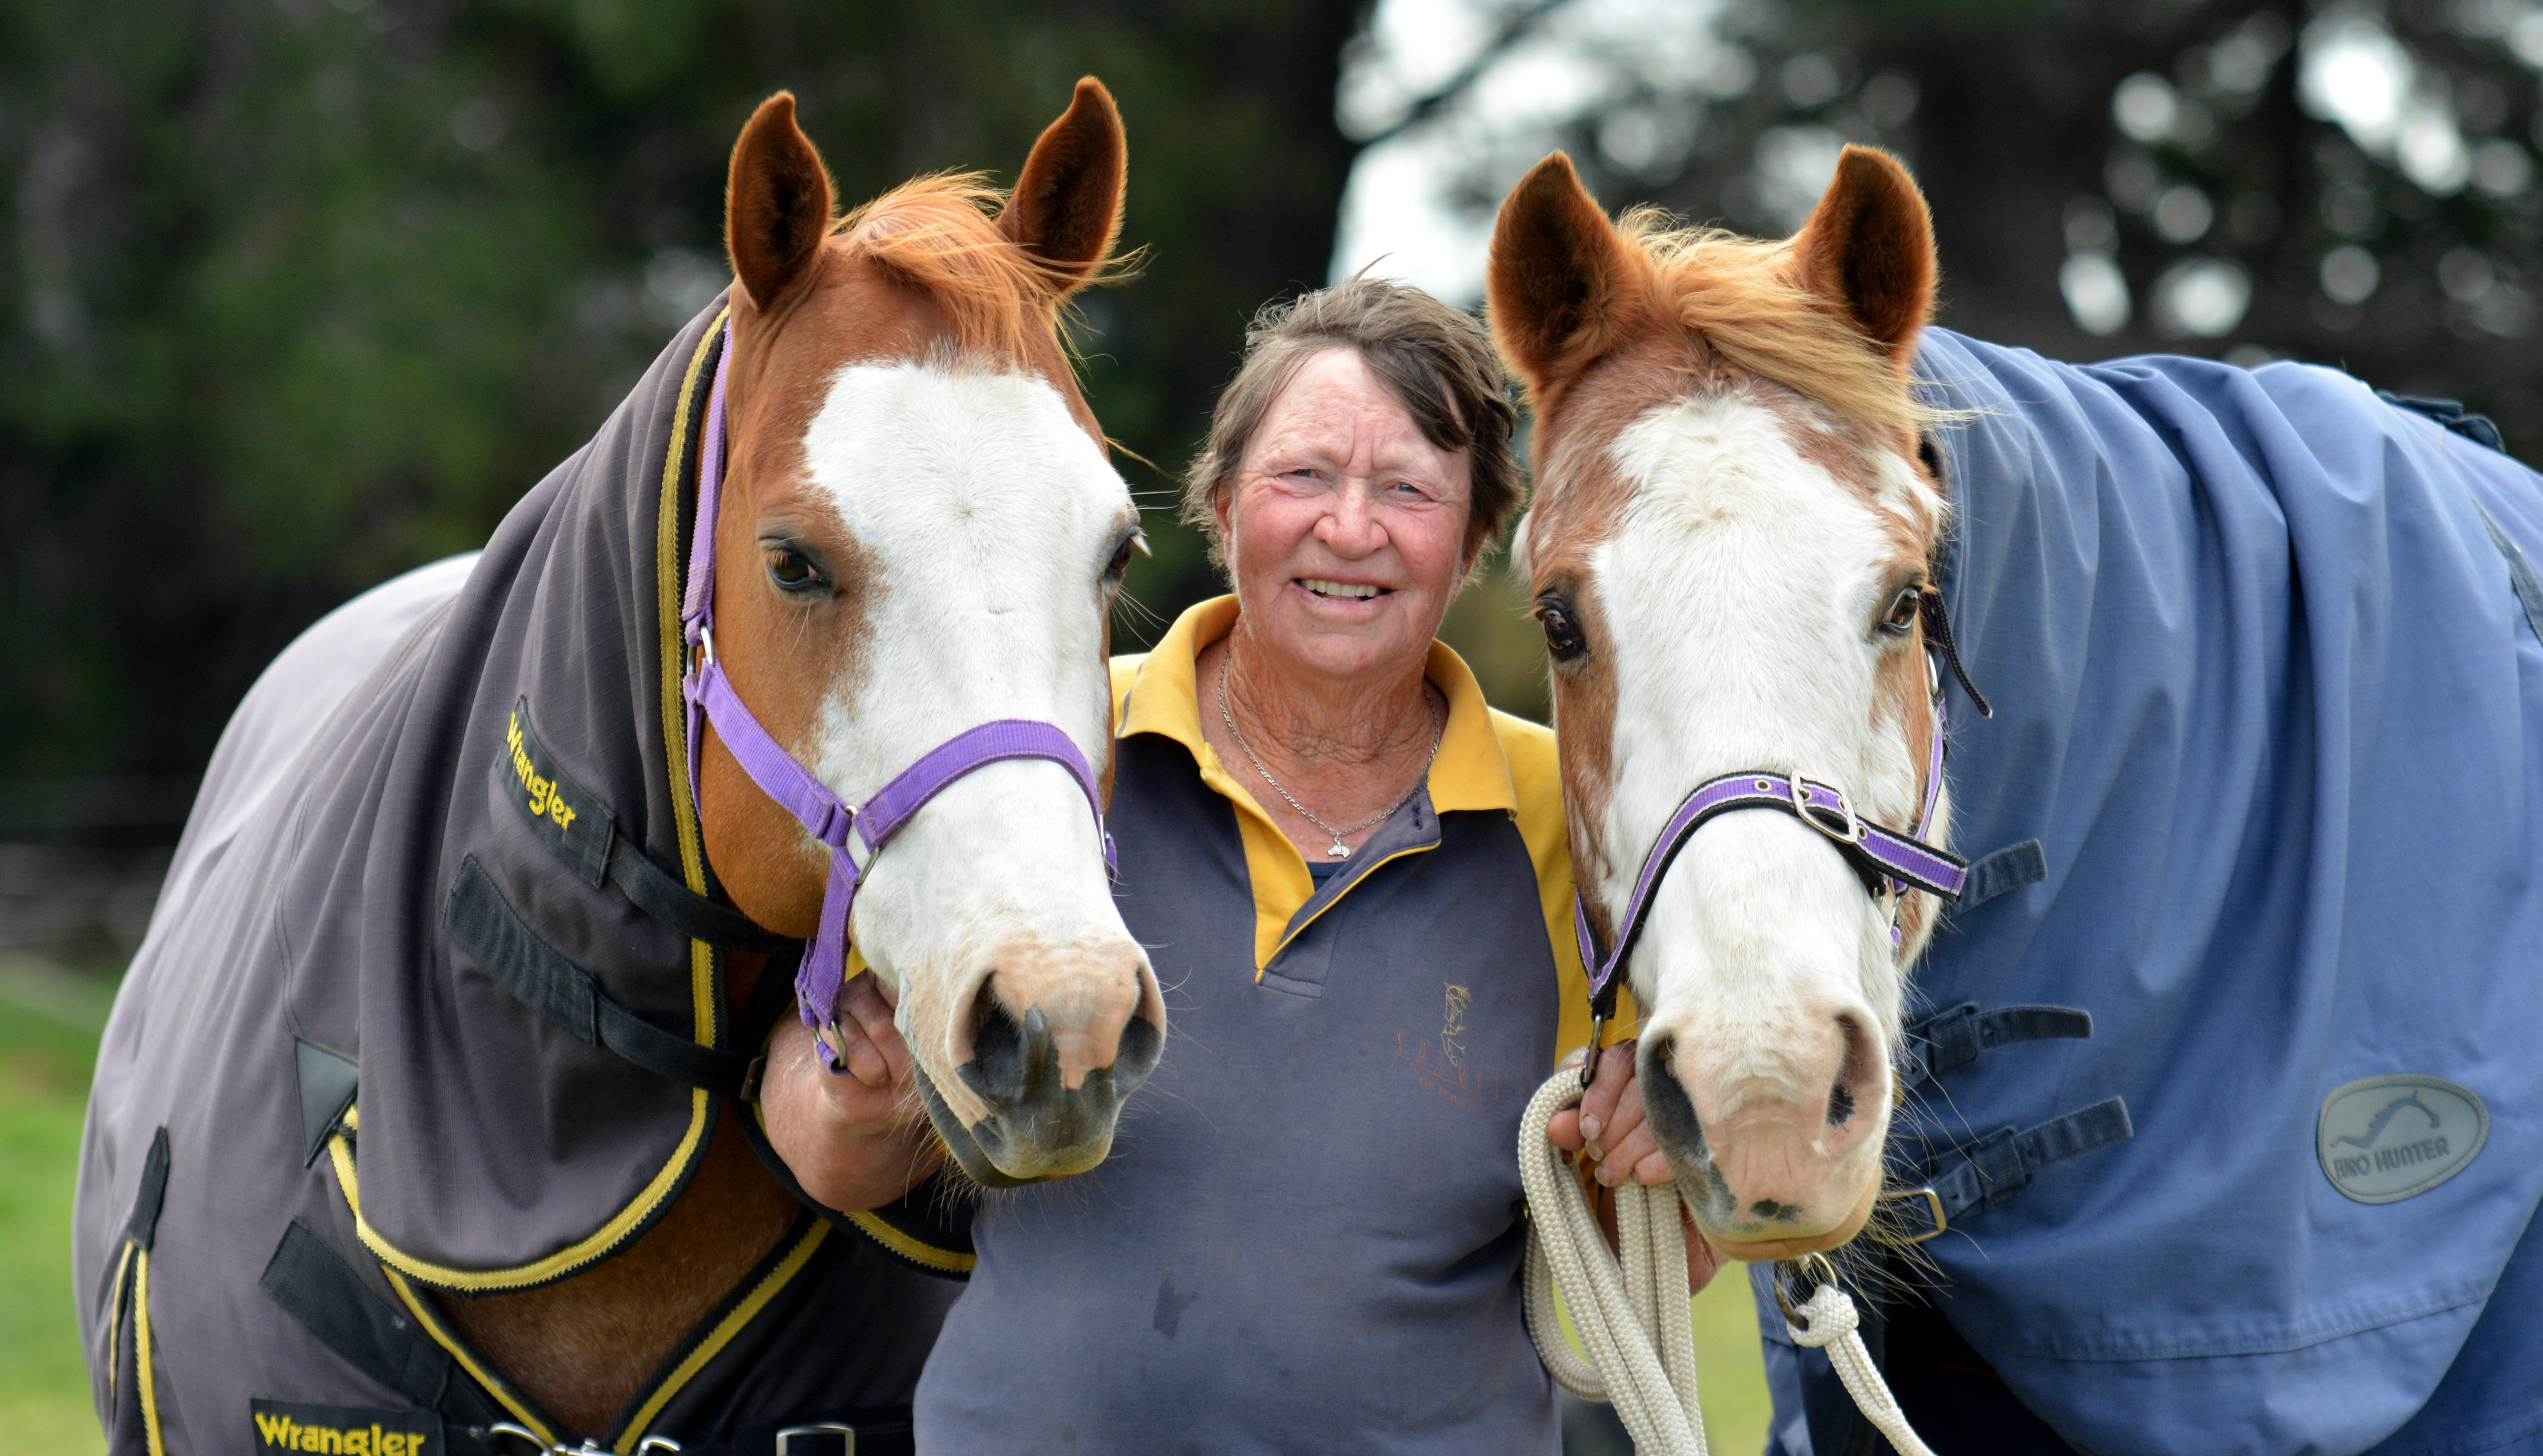 Beryl couldn't imagine life without horses